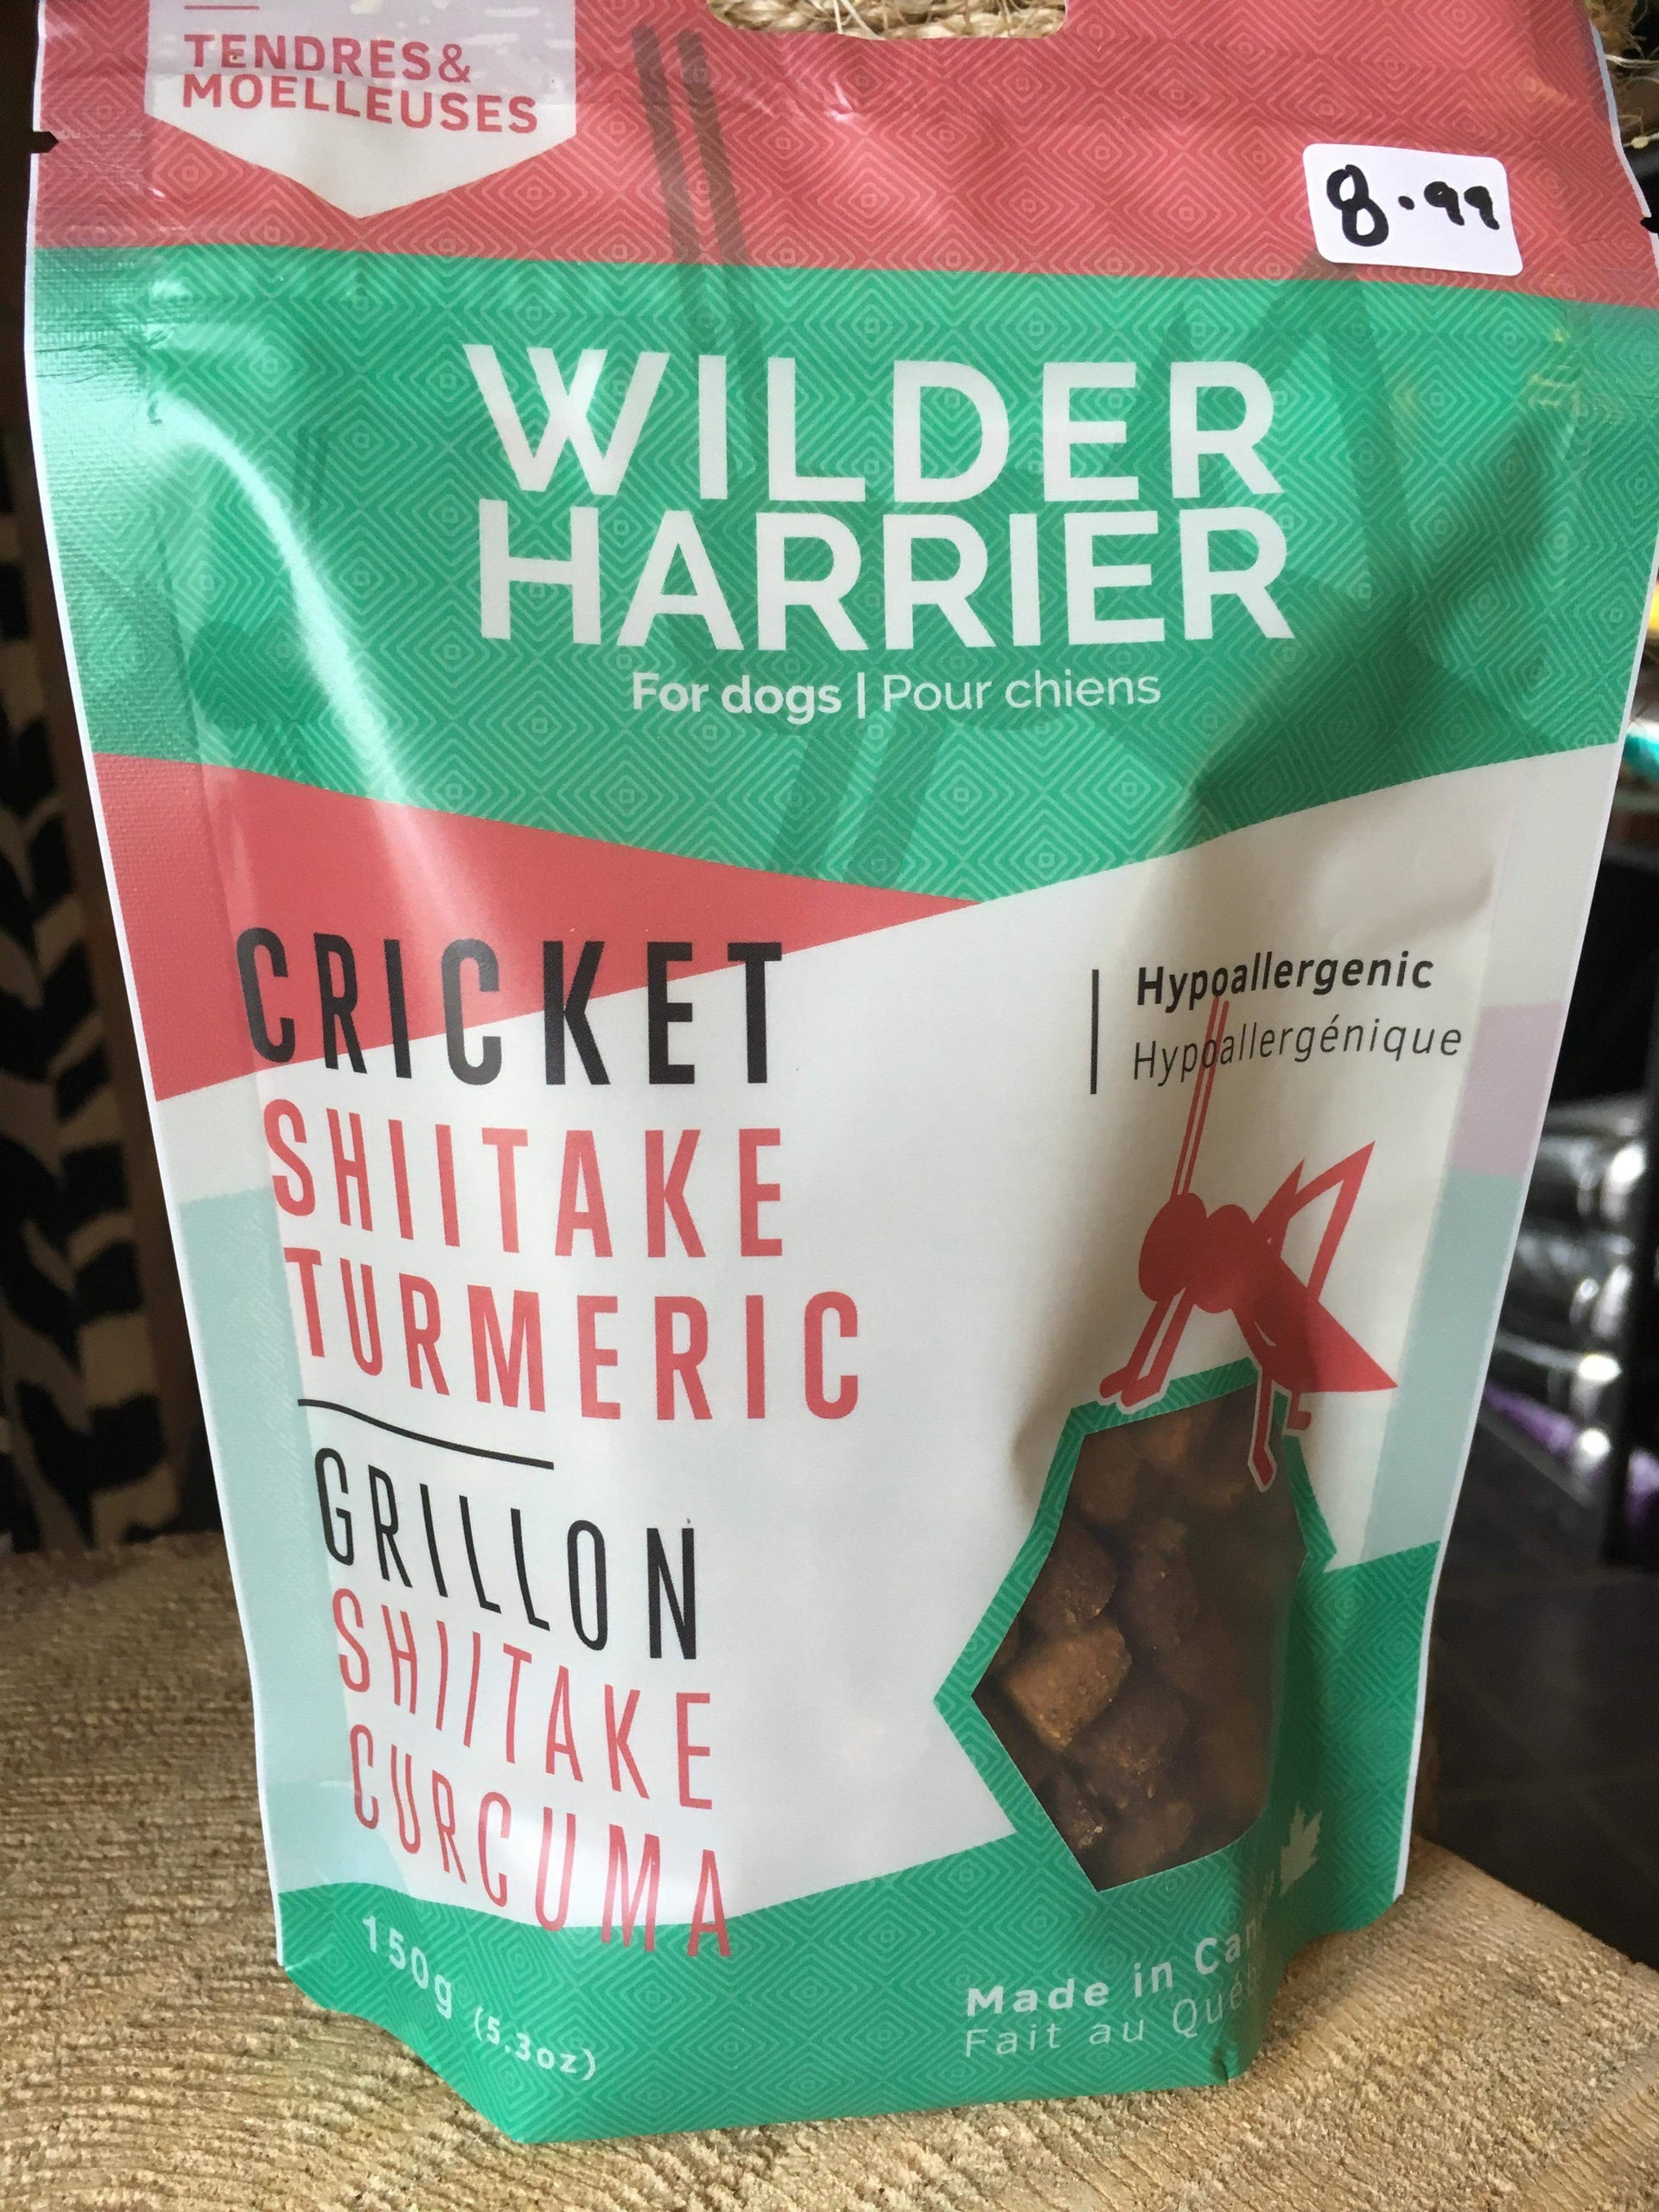 Wilder Harrier / Cricket Shiitake Turmeric